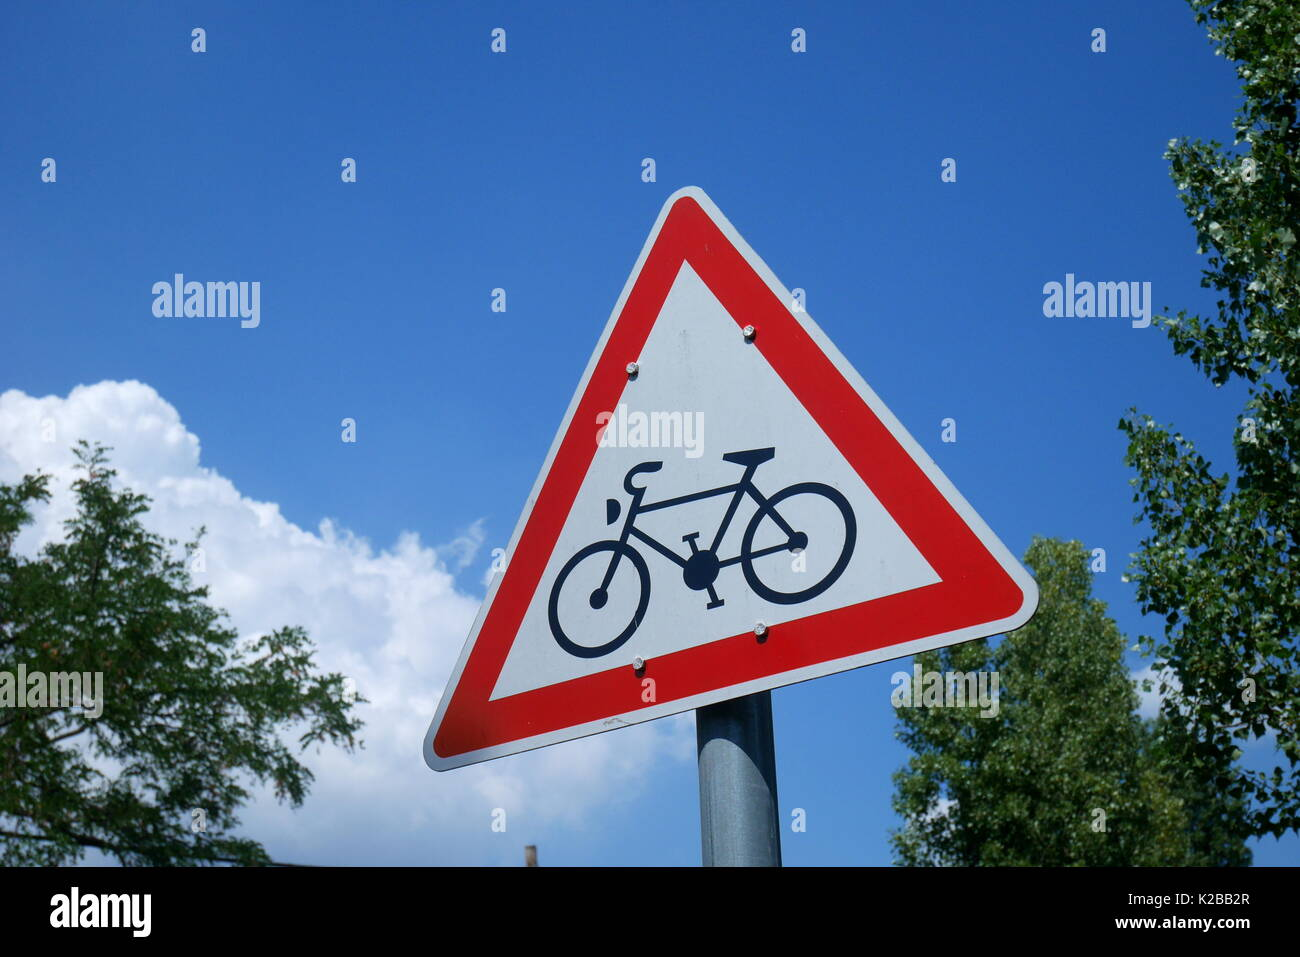 Triangular sign warning of a cycle route ahead, Margaret Island, Budapest, Hungary Stock Photo